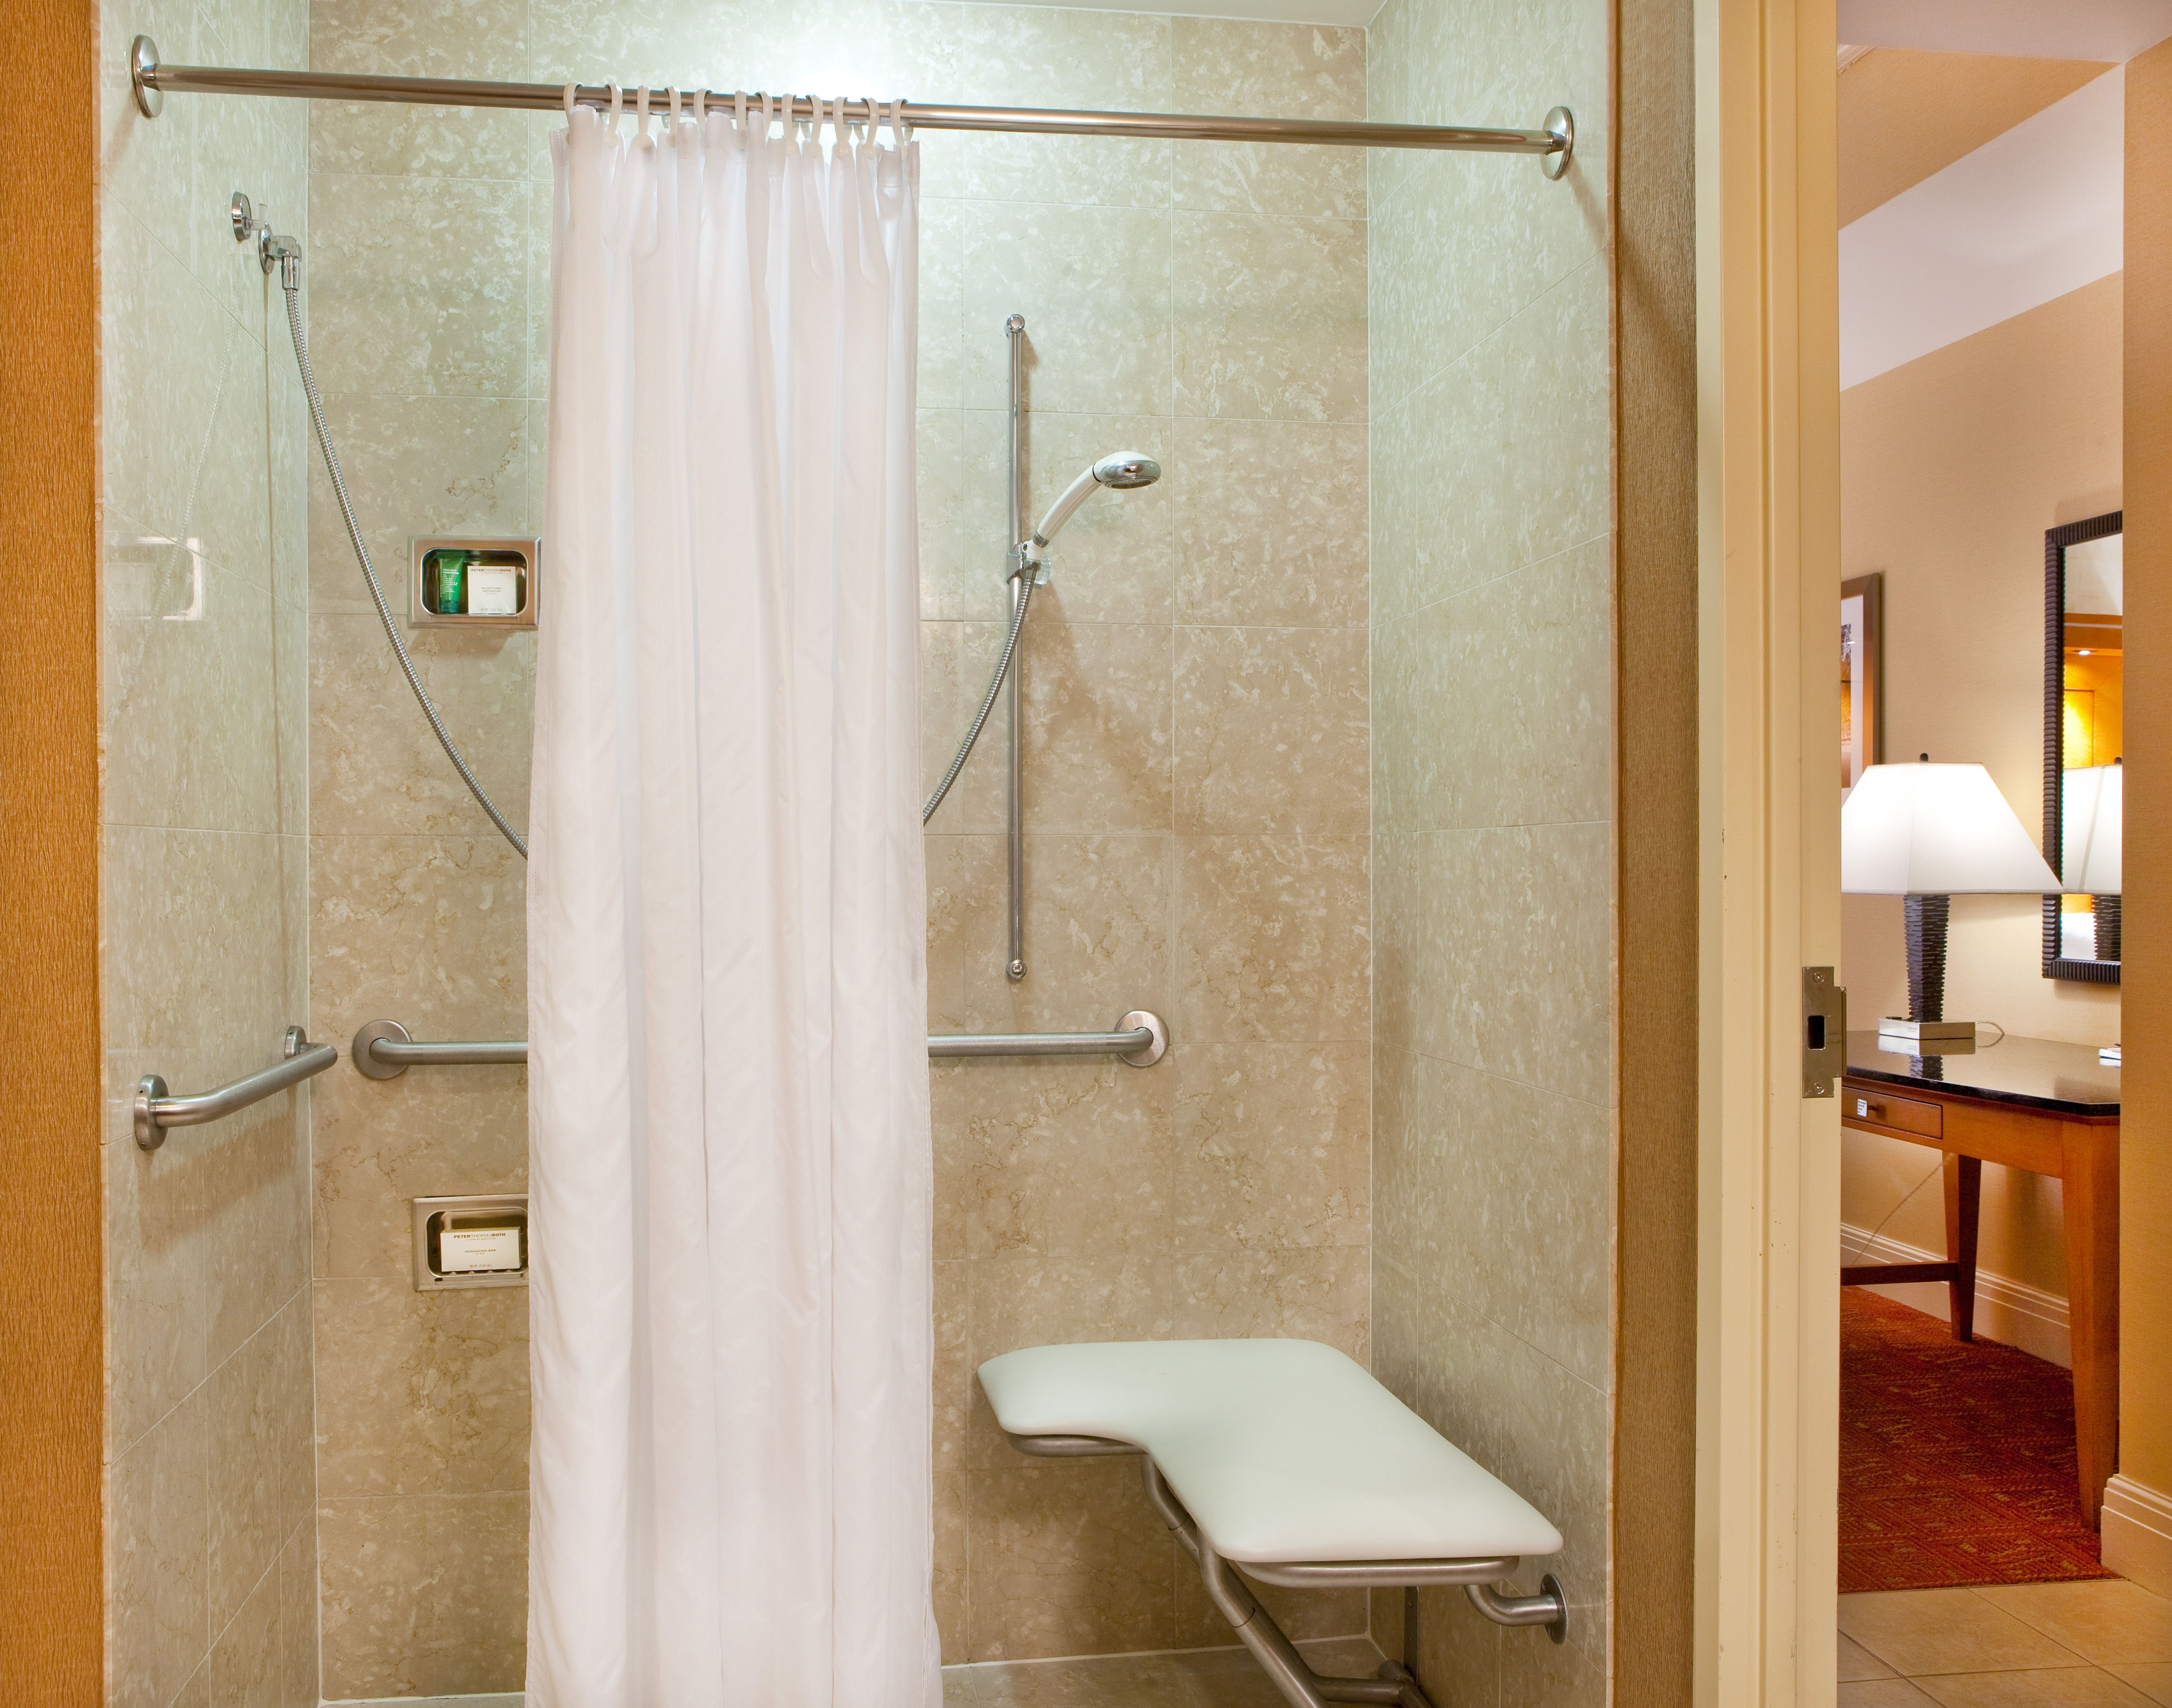 Indulge in first-class amenities in a spacious, ADA accessible layout in our distinctive guest rooms equipped with either accessible tubs or roll-in showers.